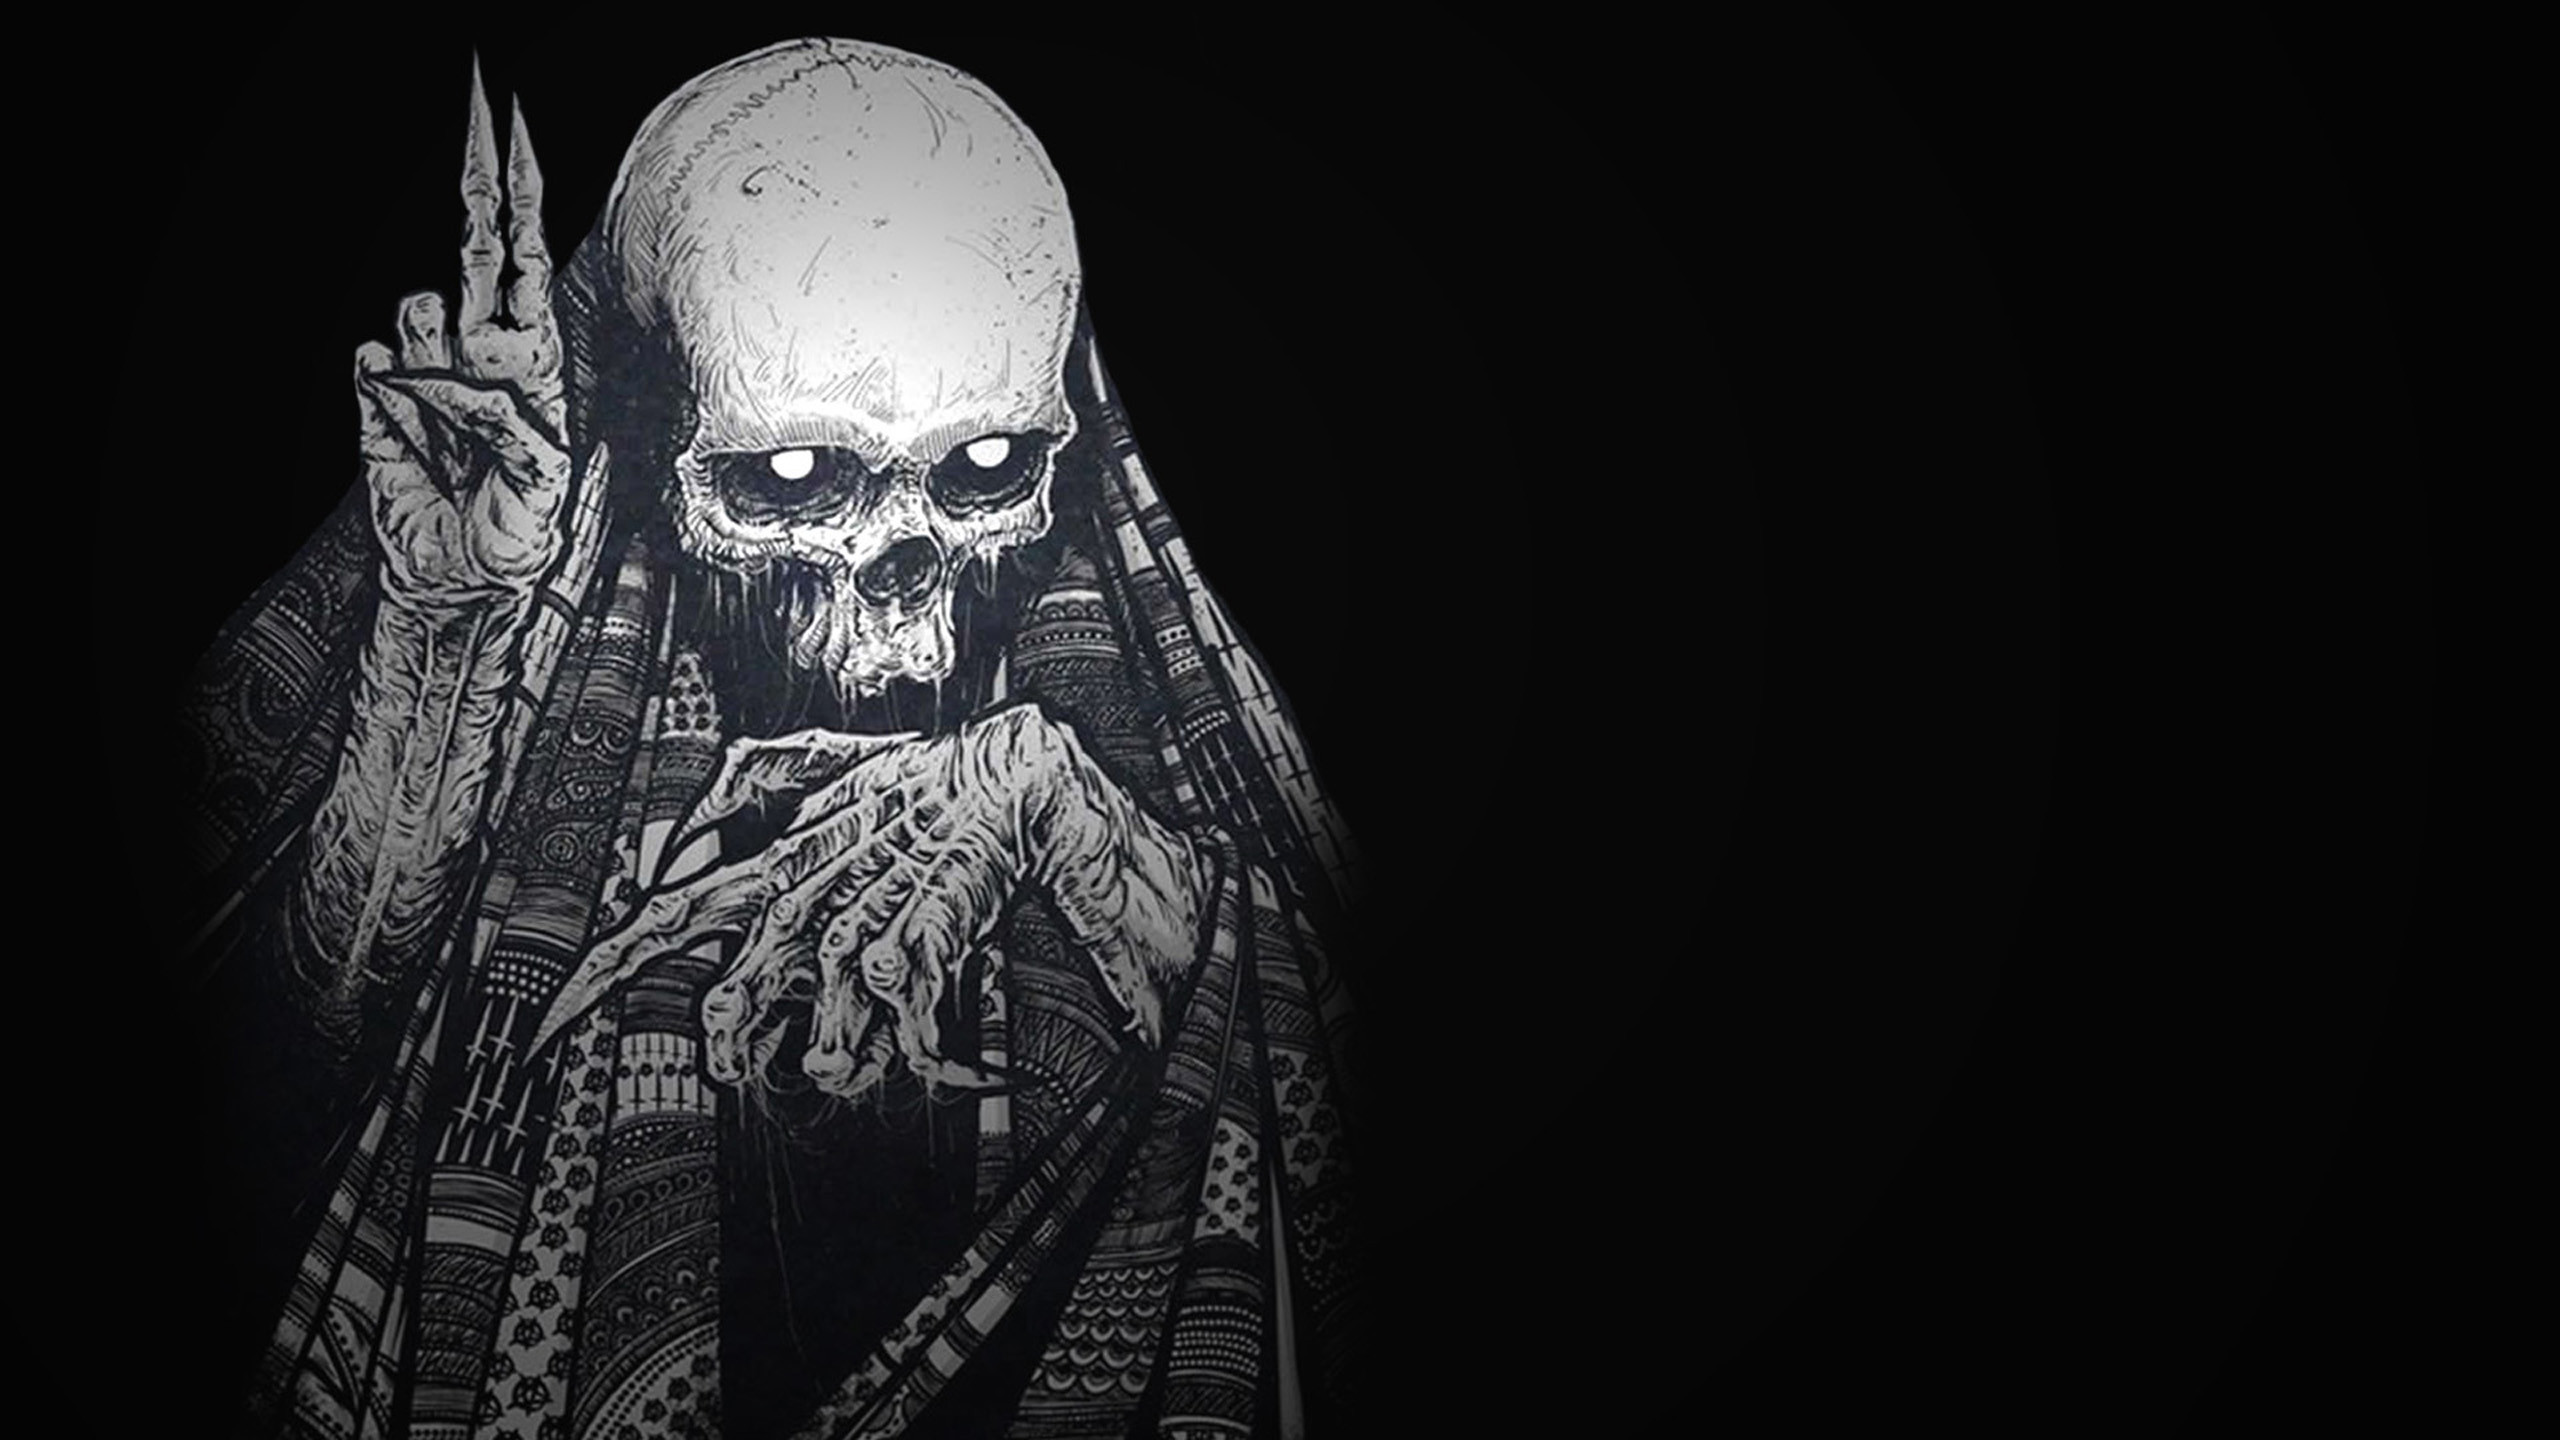 Hd Wallpaper Scary Skeleton photos Scary Wallpapers HD And Enjoy The .